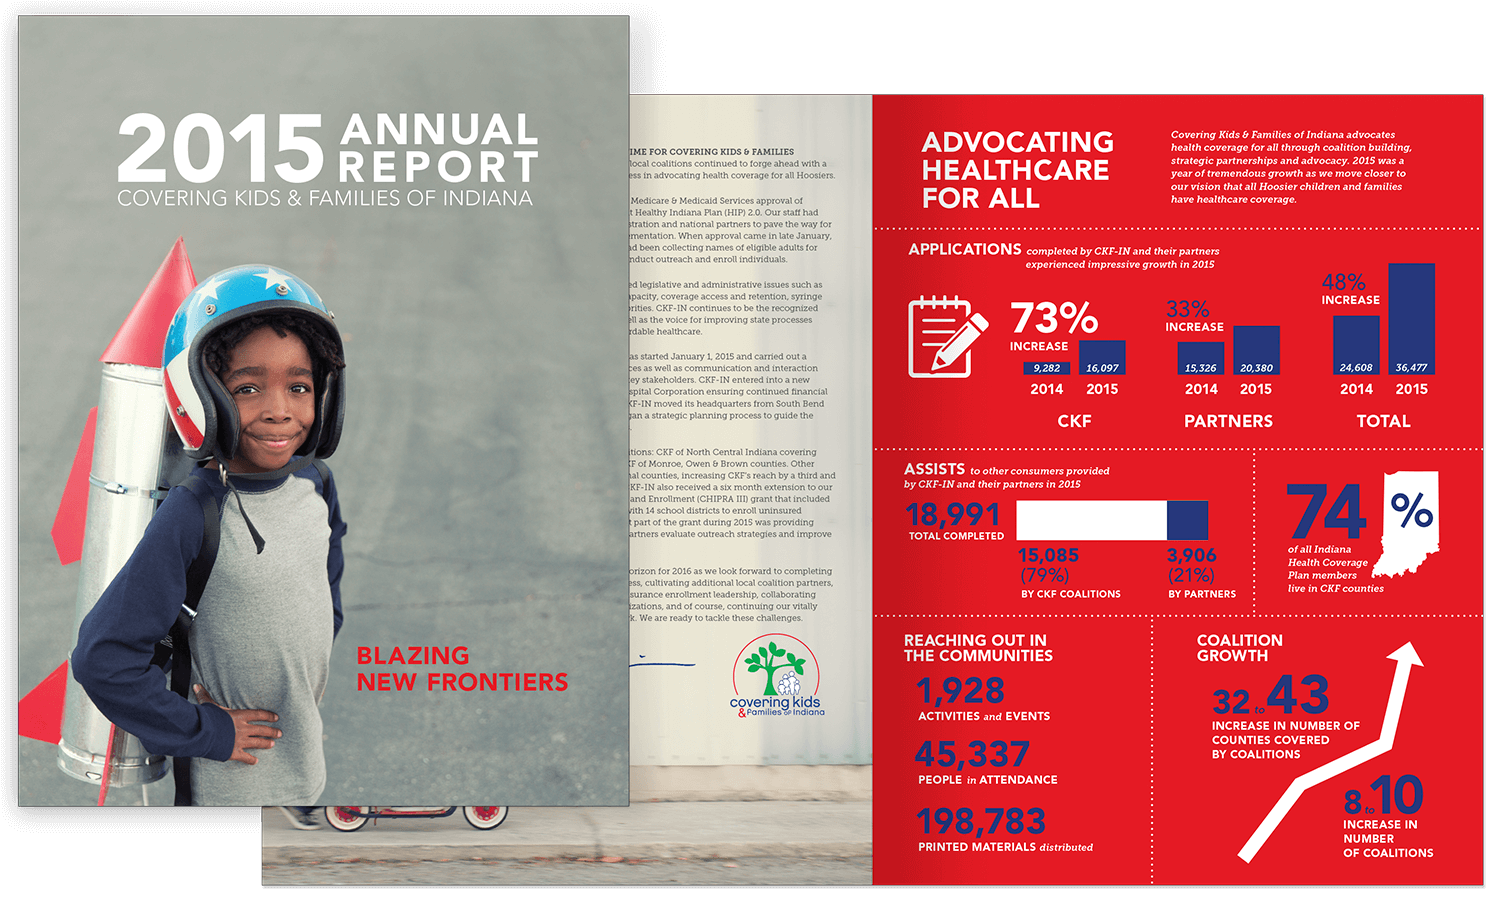 Covering Kids & Families <strong>Annual Report</strong>